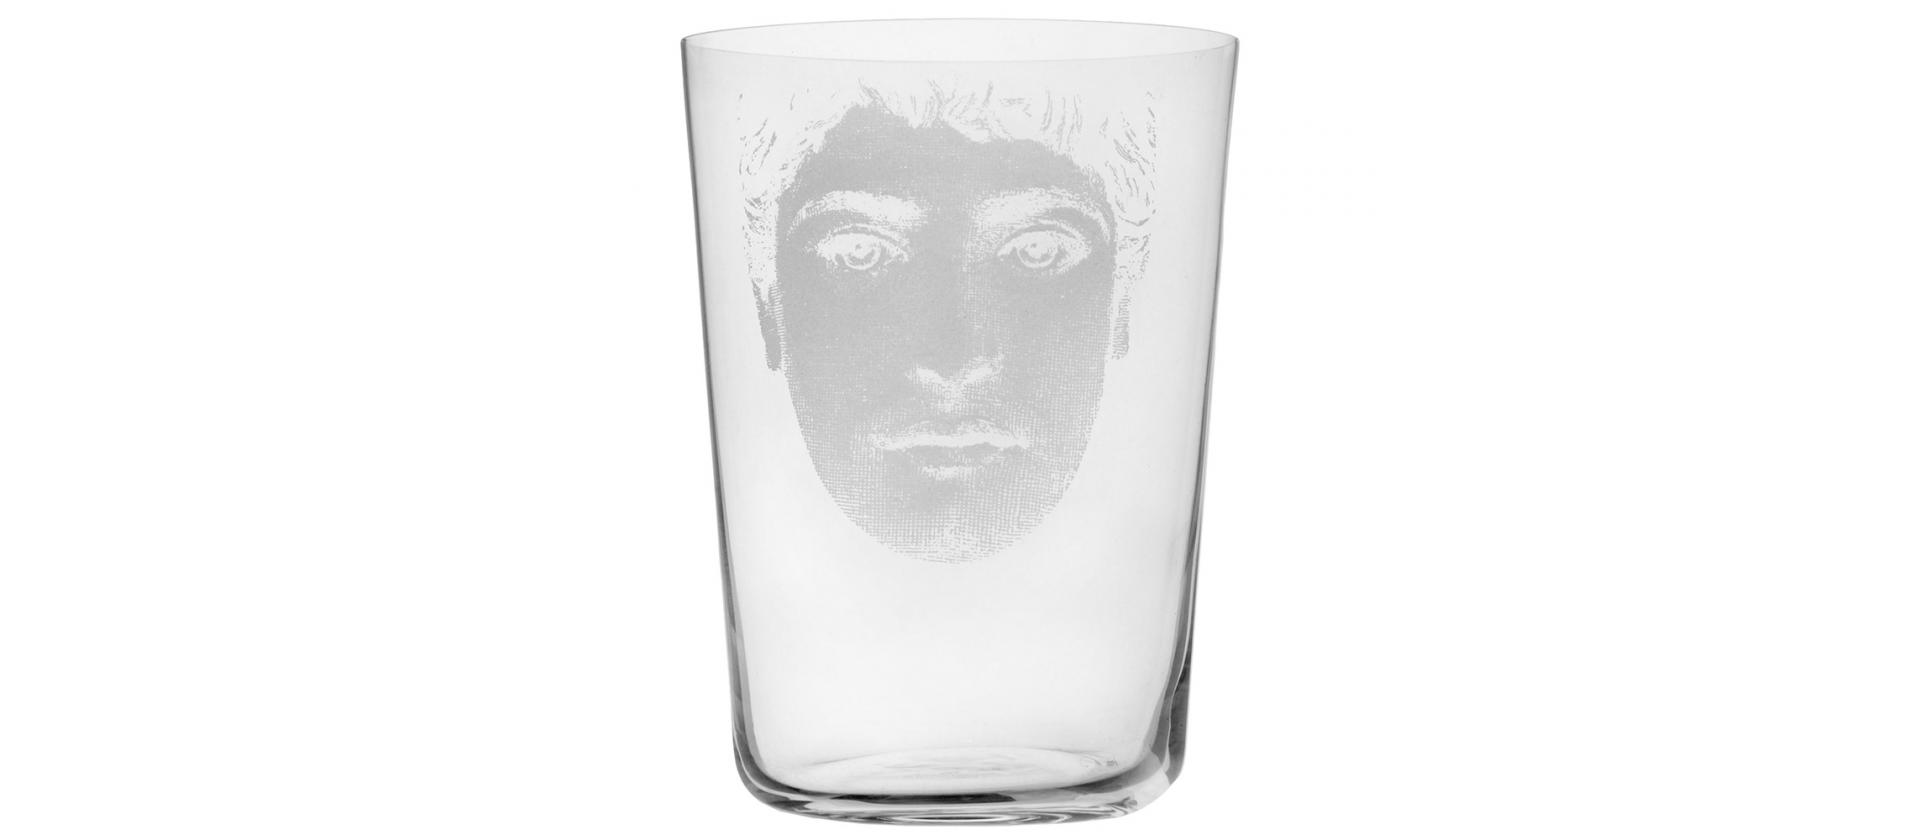 Large glass Fornasetti Tet a tet He big